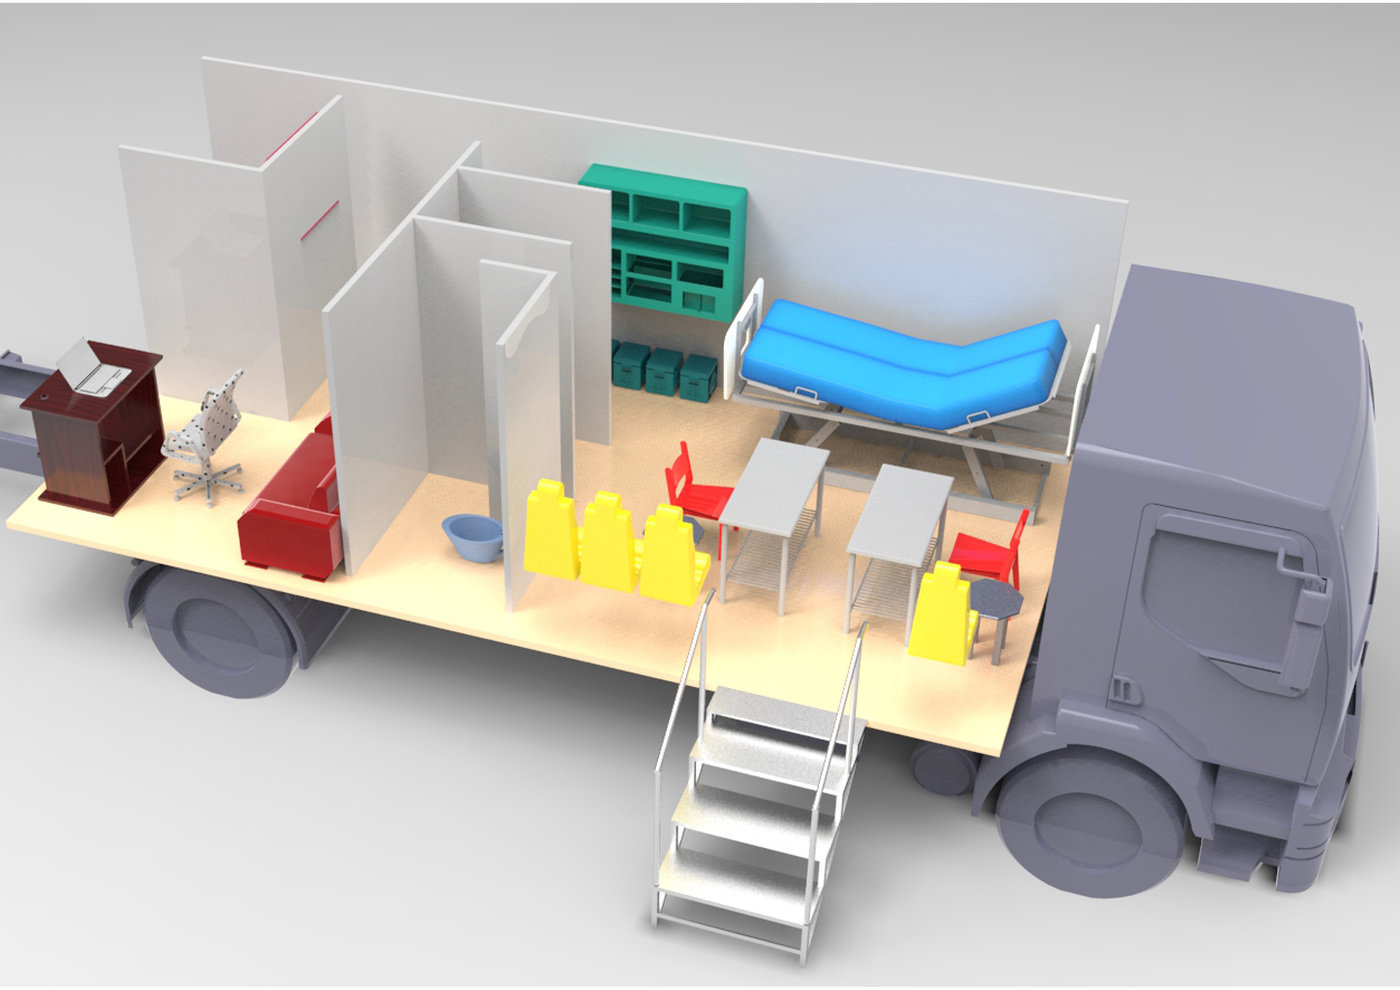 Design of a mobile medical clinic to function in remote